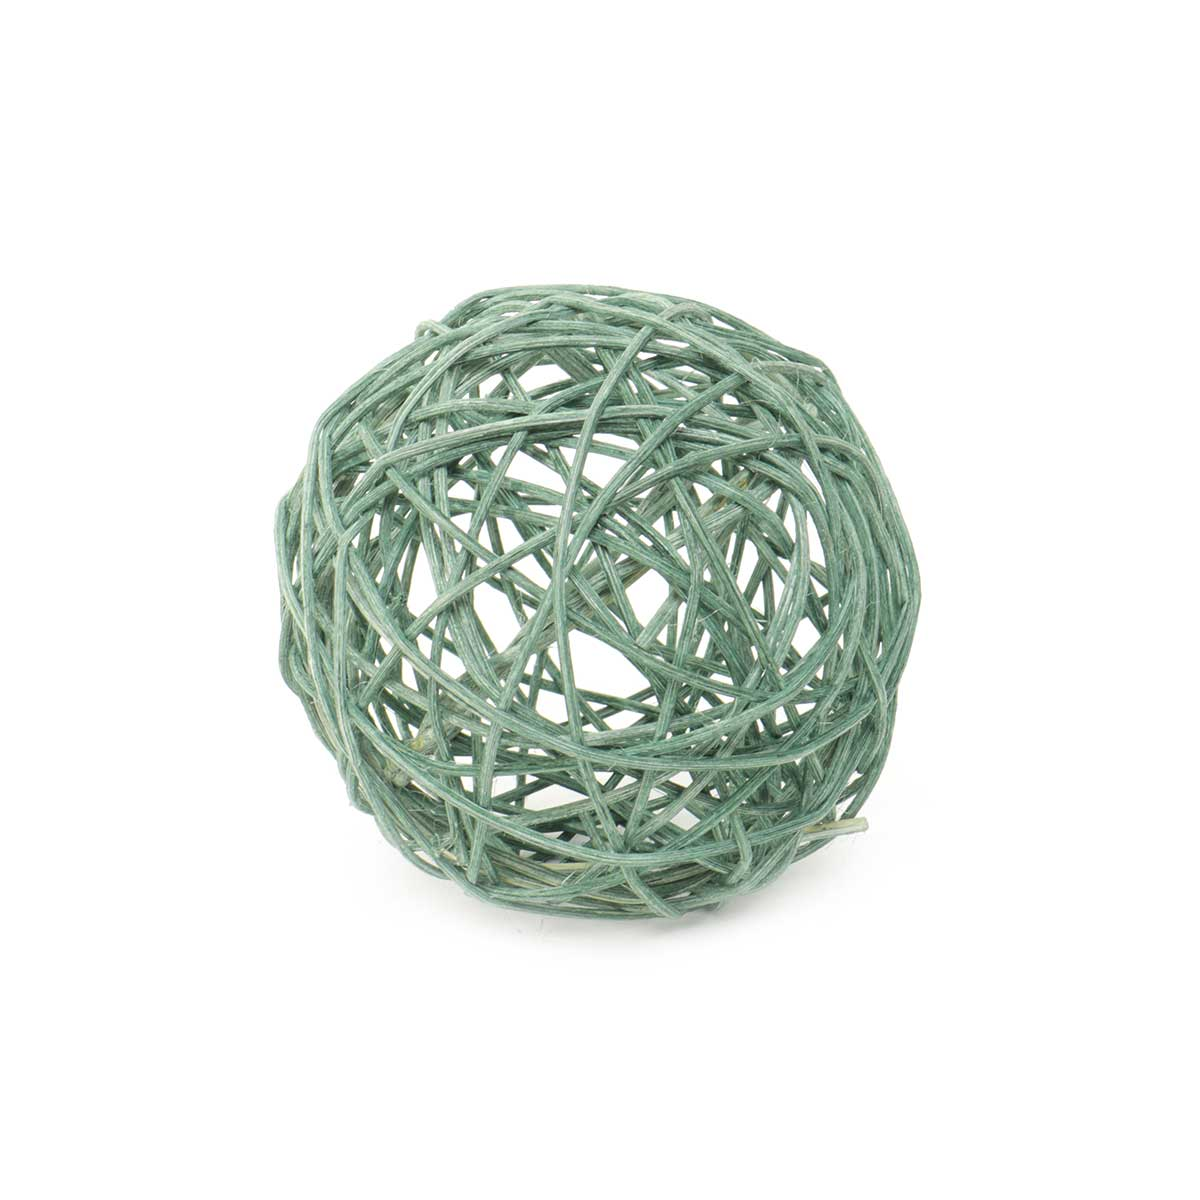 "Twig Ball 5"" Teal"